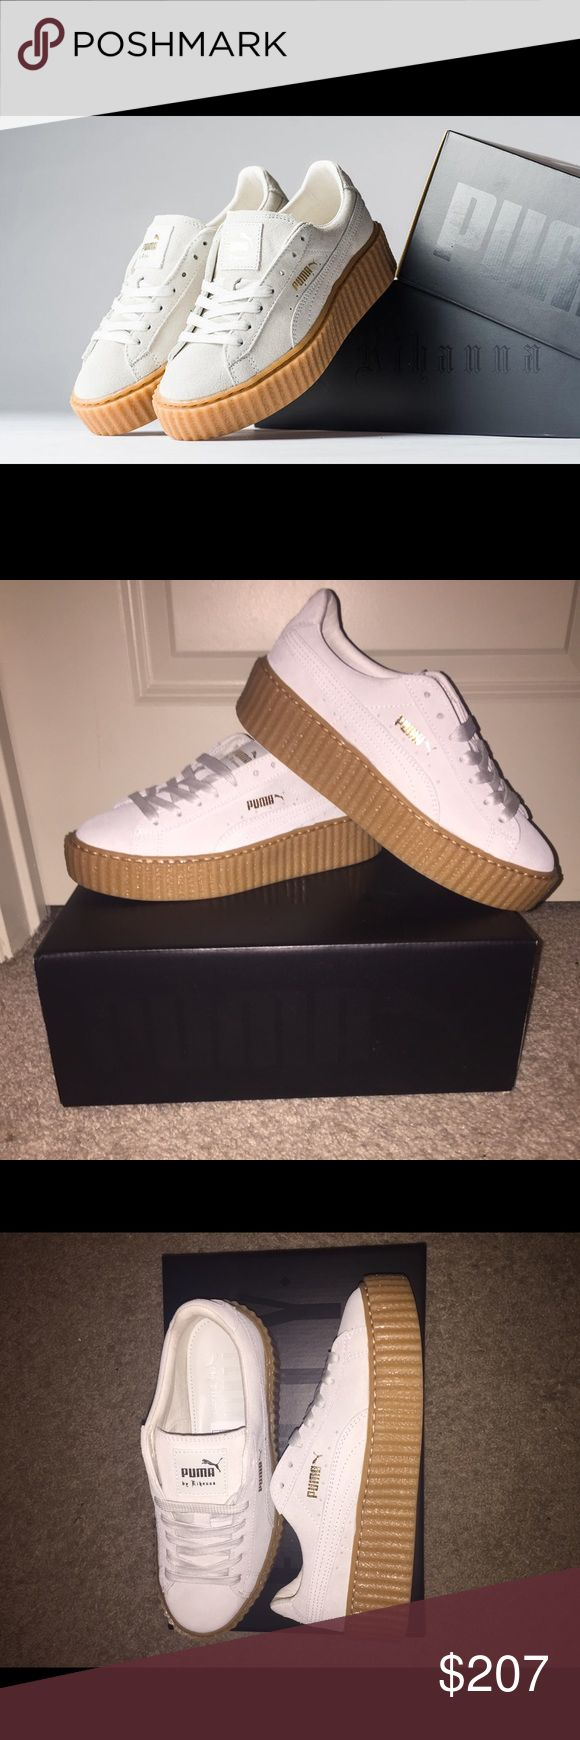 Puma Creepers Mustard wearpointwindfarm.co.uk 7d26c66f6